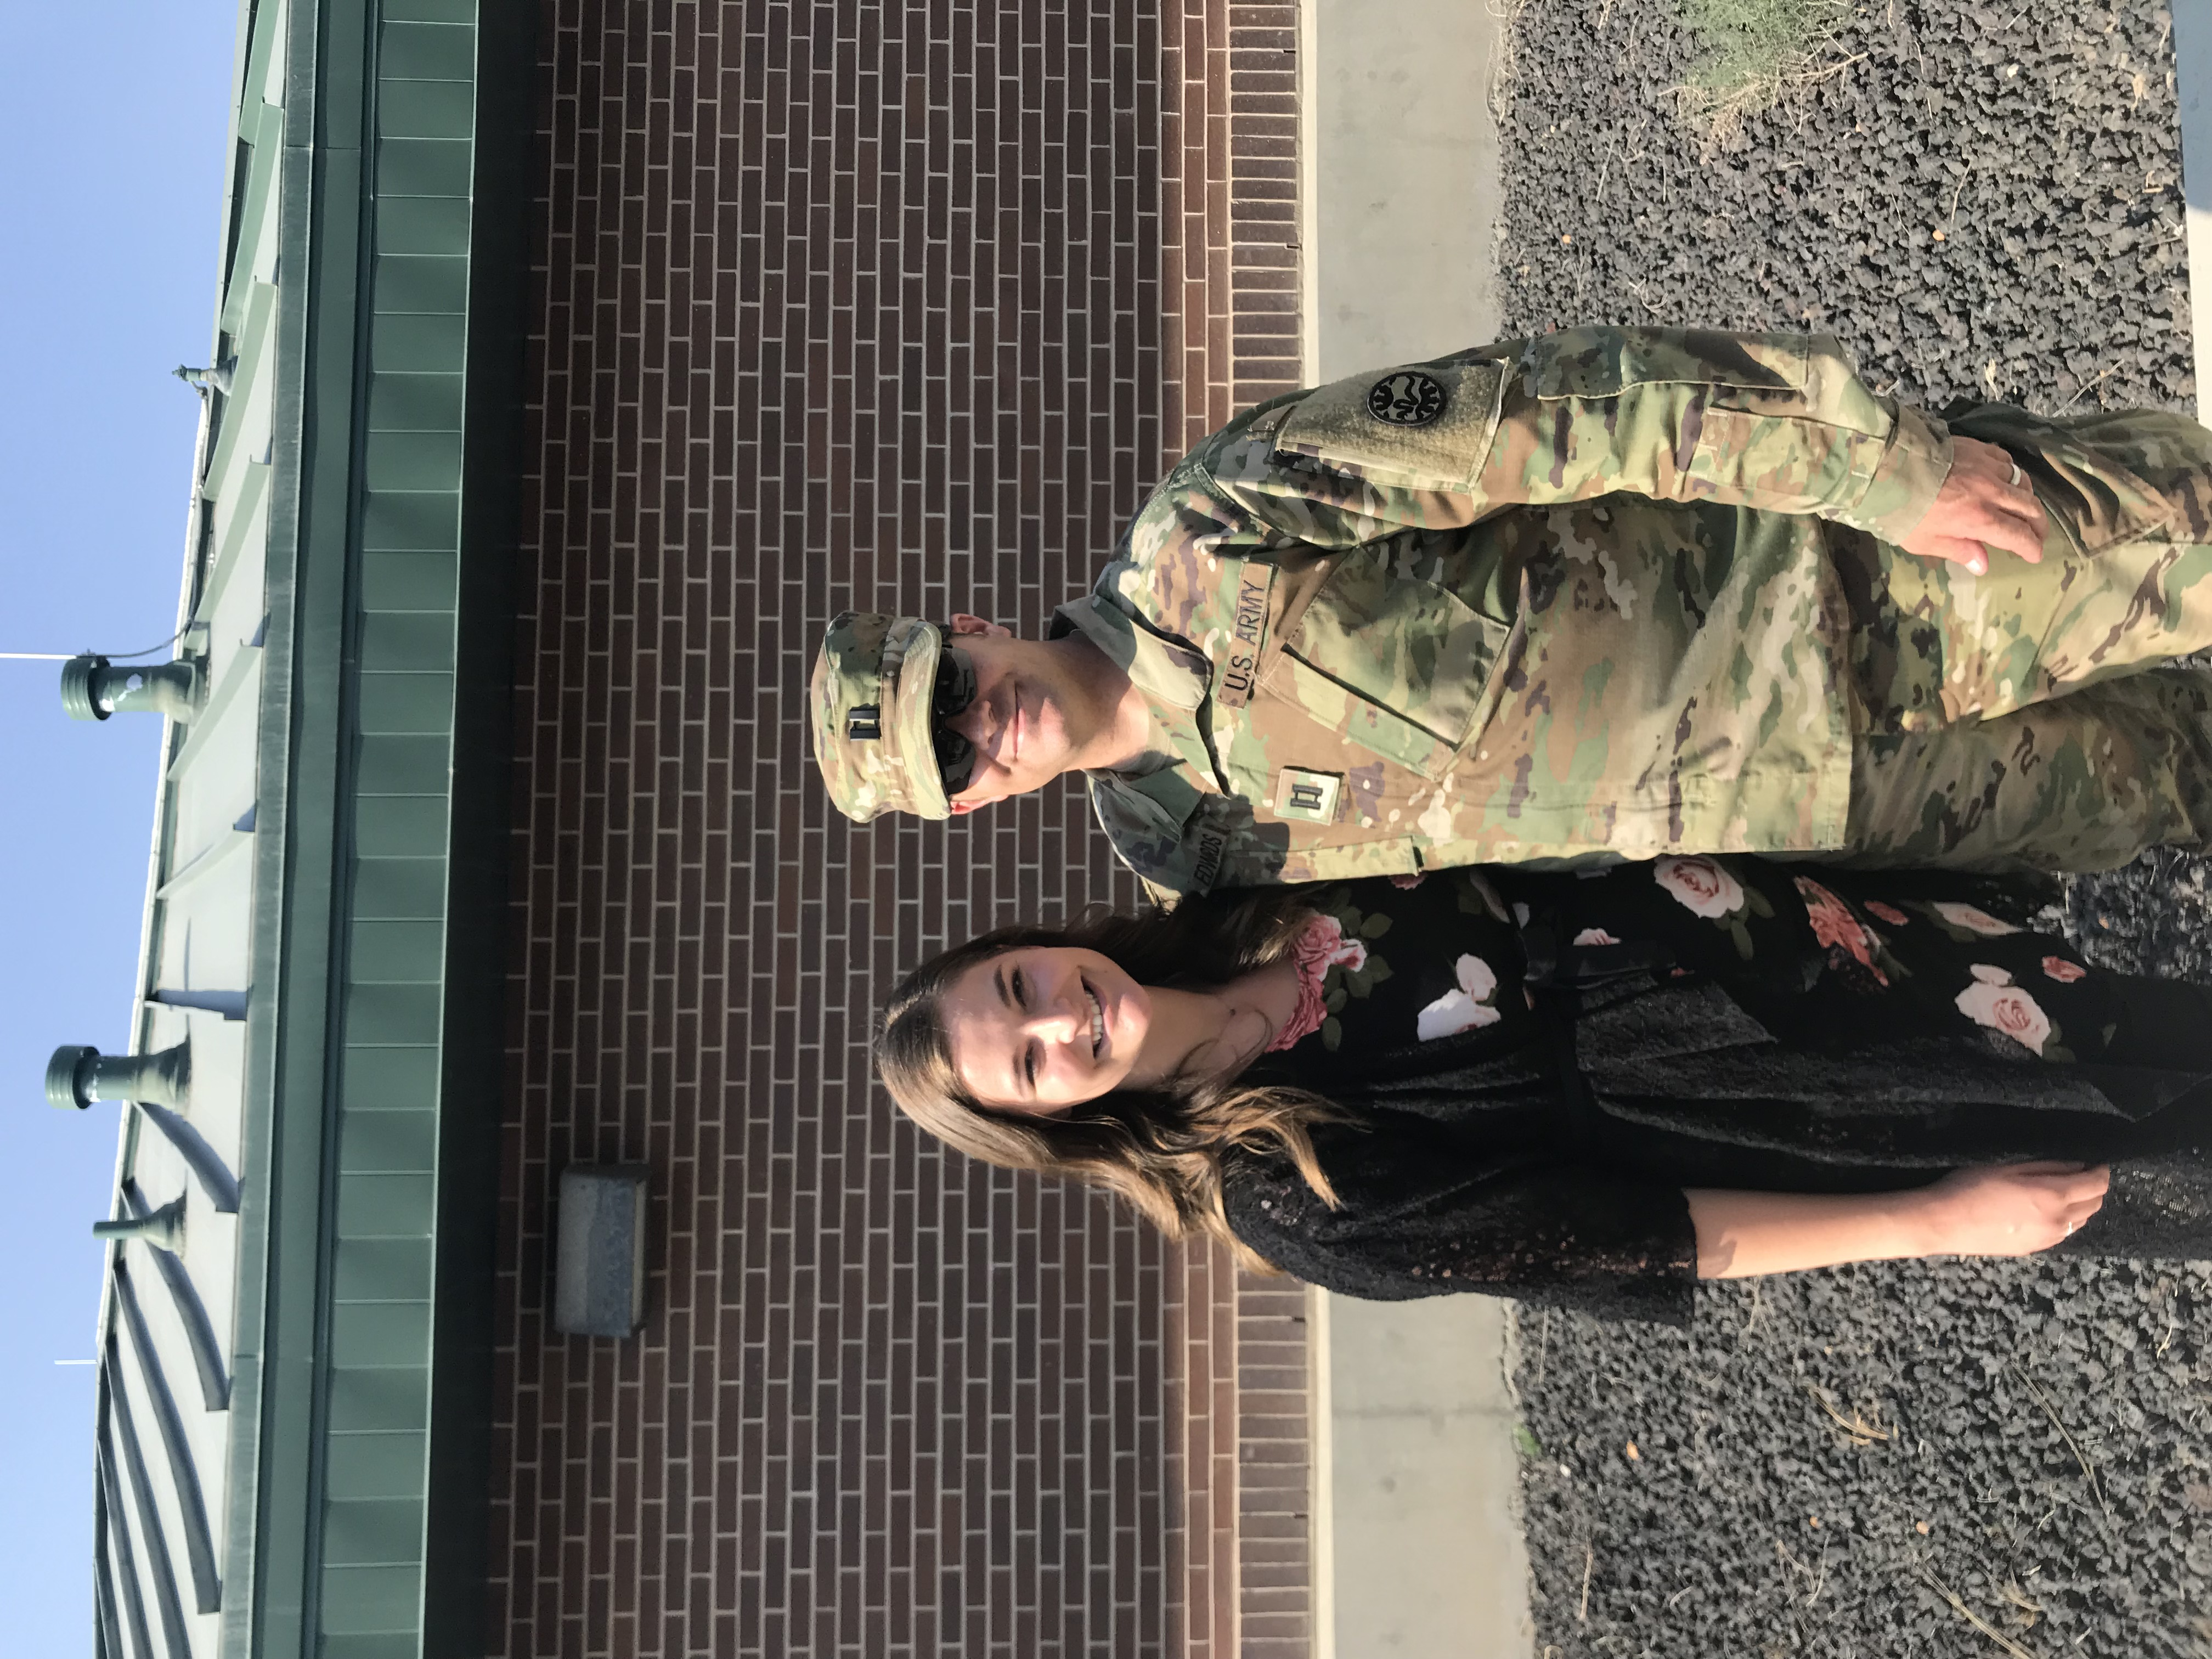 A.J. Edwards, shown with his wife, Sarah, is a captain in the Idaho Army National Guard. Twenty years ago he was struck by lightning while playing football with his youth team.